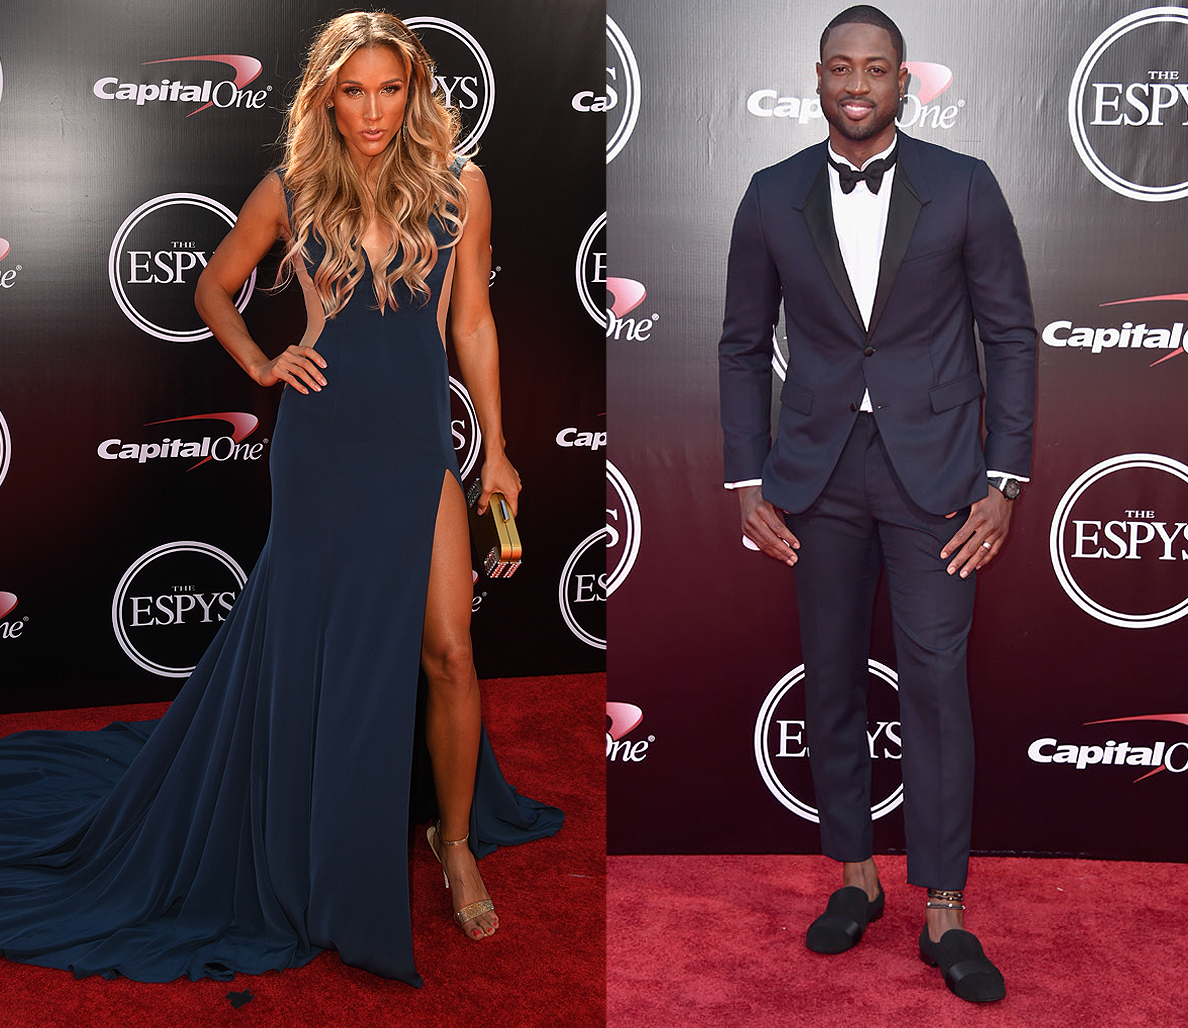 ESPYS 2016: The Best Dressed Men and